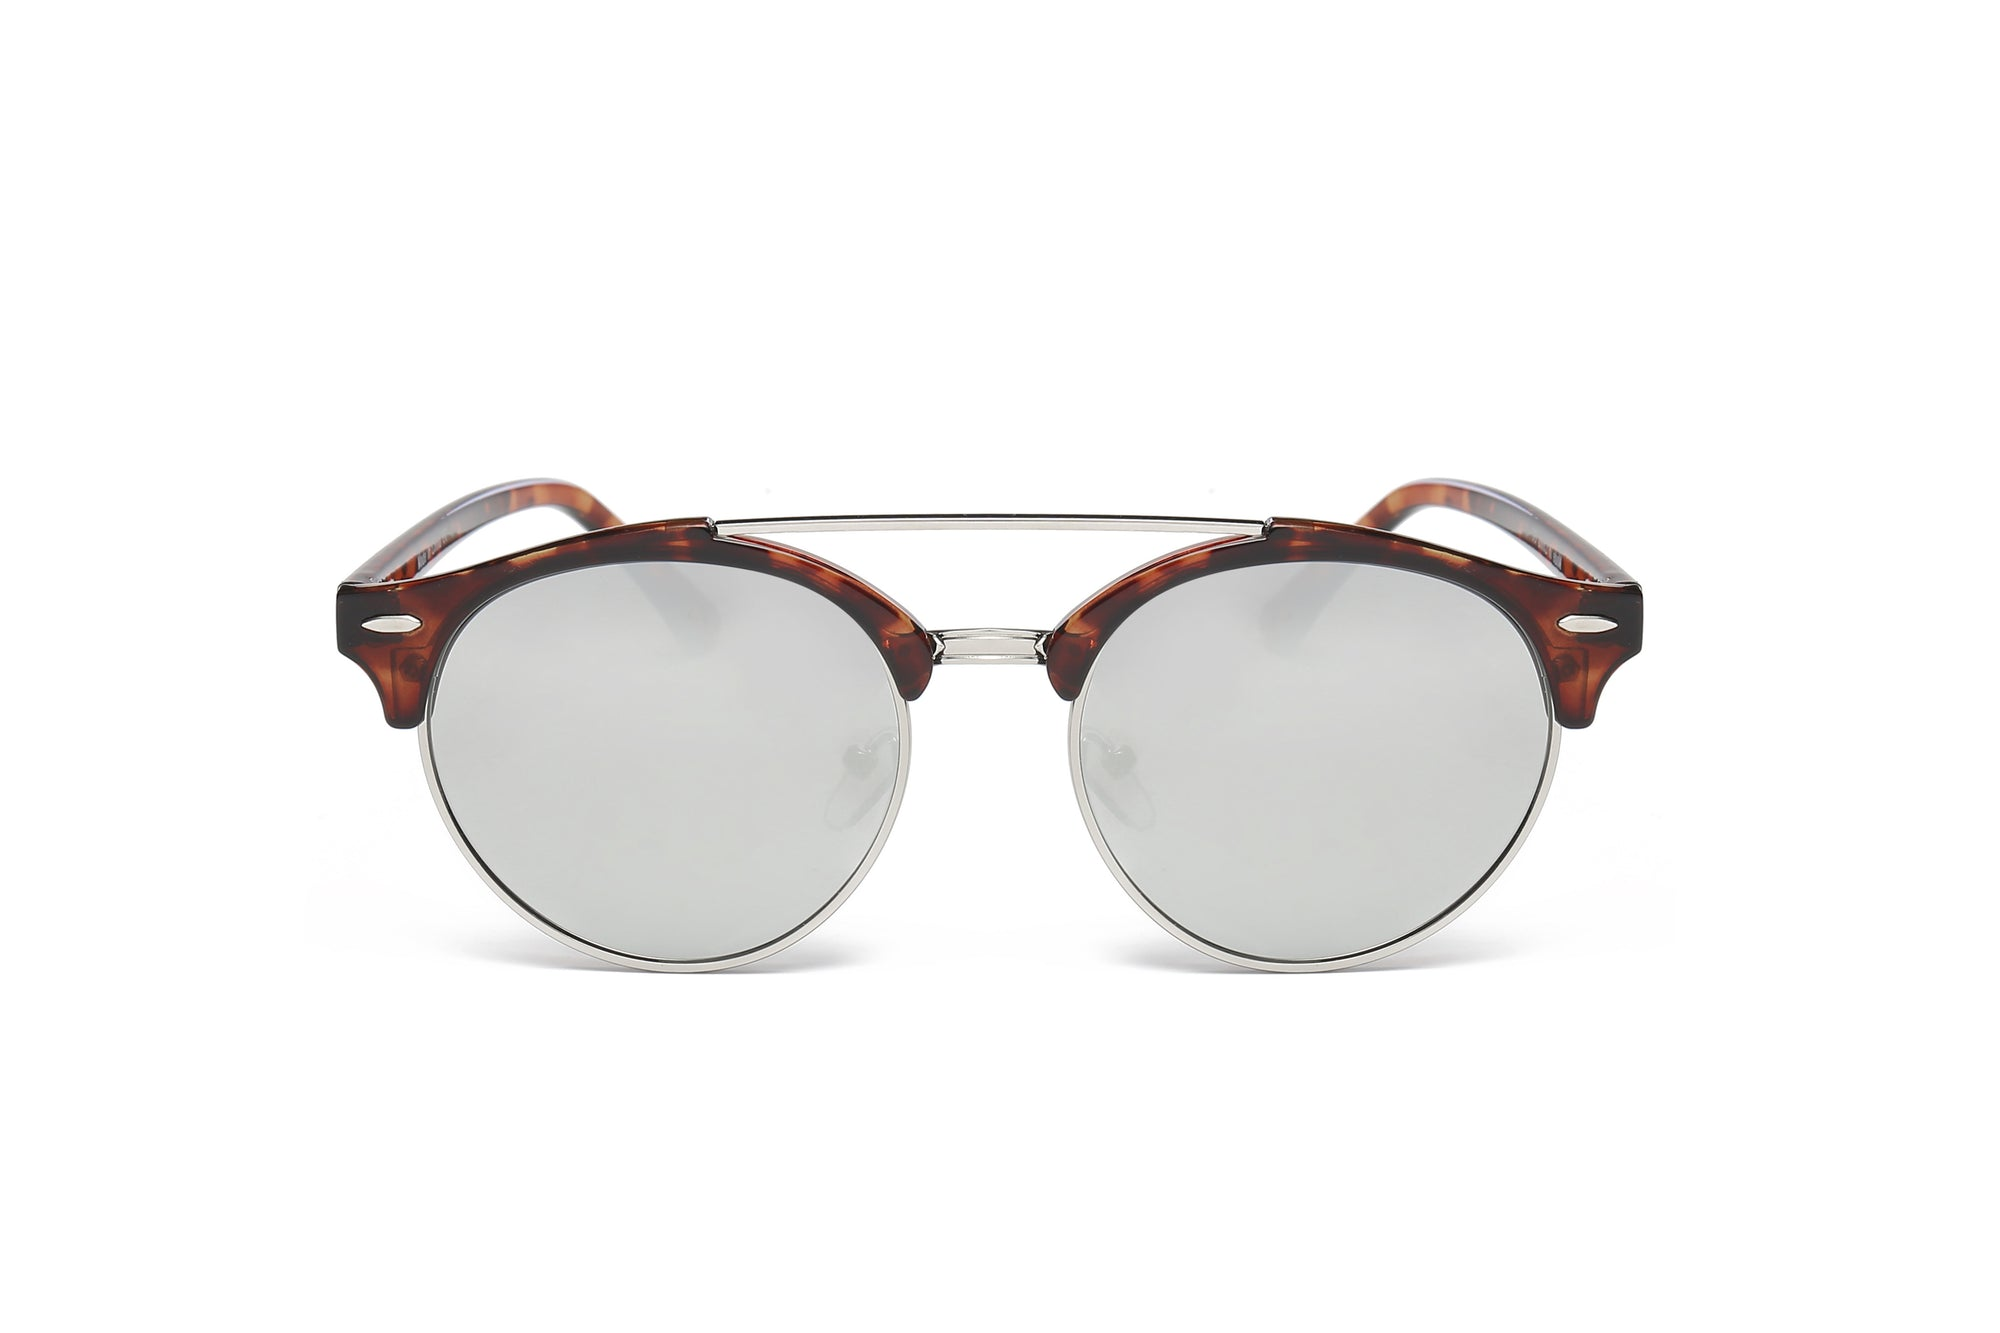 E22 - Round Circle Half Frame Mirrored Lens Sunglasses - Wholesale Sunglasses and glasses